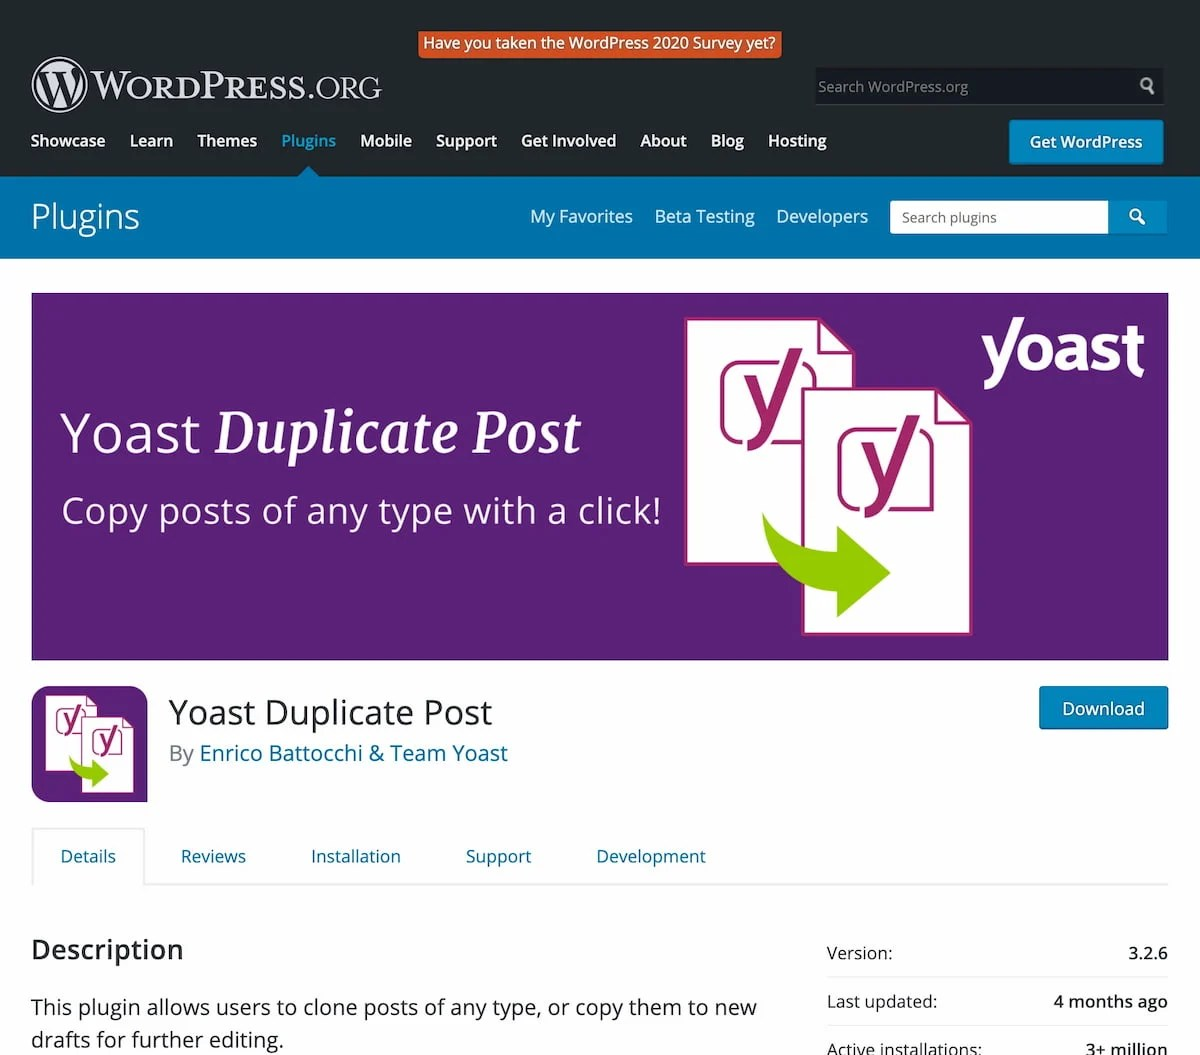 How to rewrite and republish content with Yoast Duplicate Post